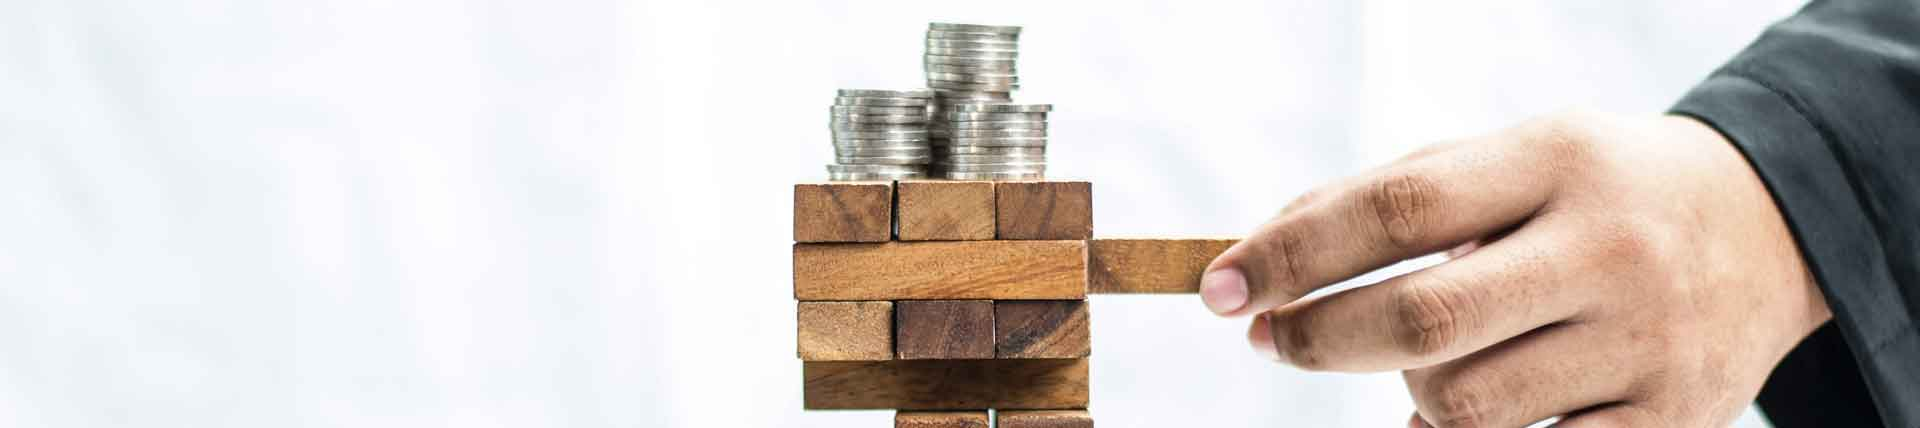 Coins balancing on a block tower